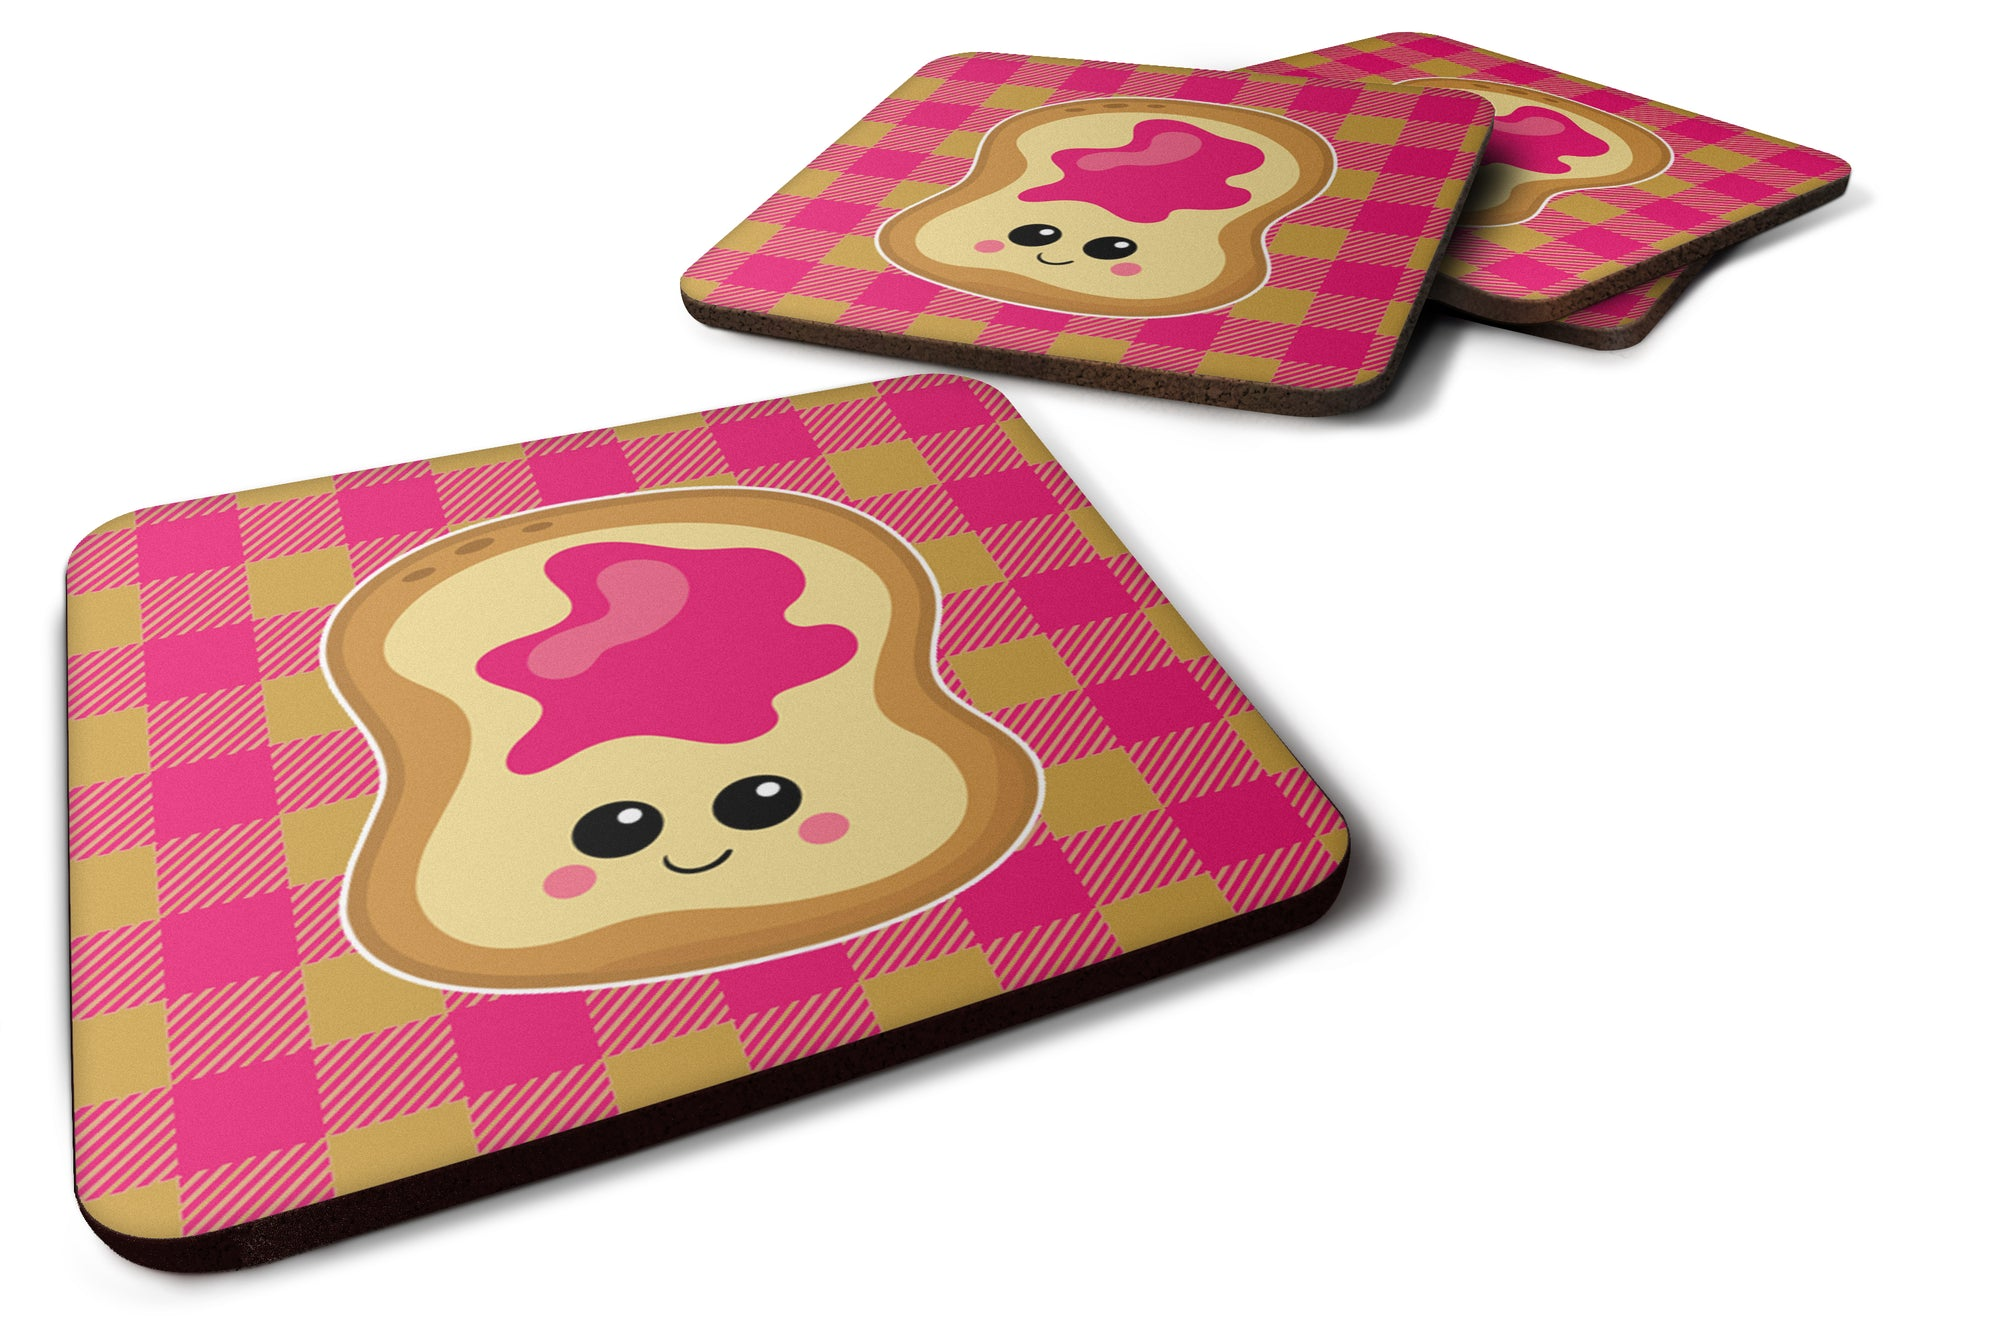 Jelly Toast Foam Coaster Set of 4 BB6844FC by Caroline's Treasures